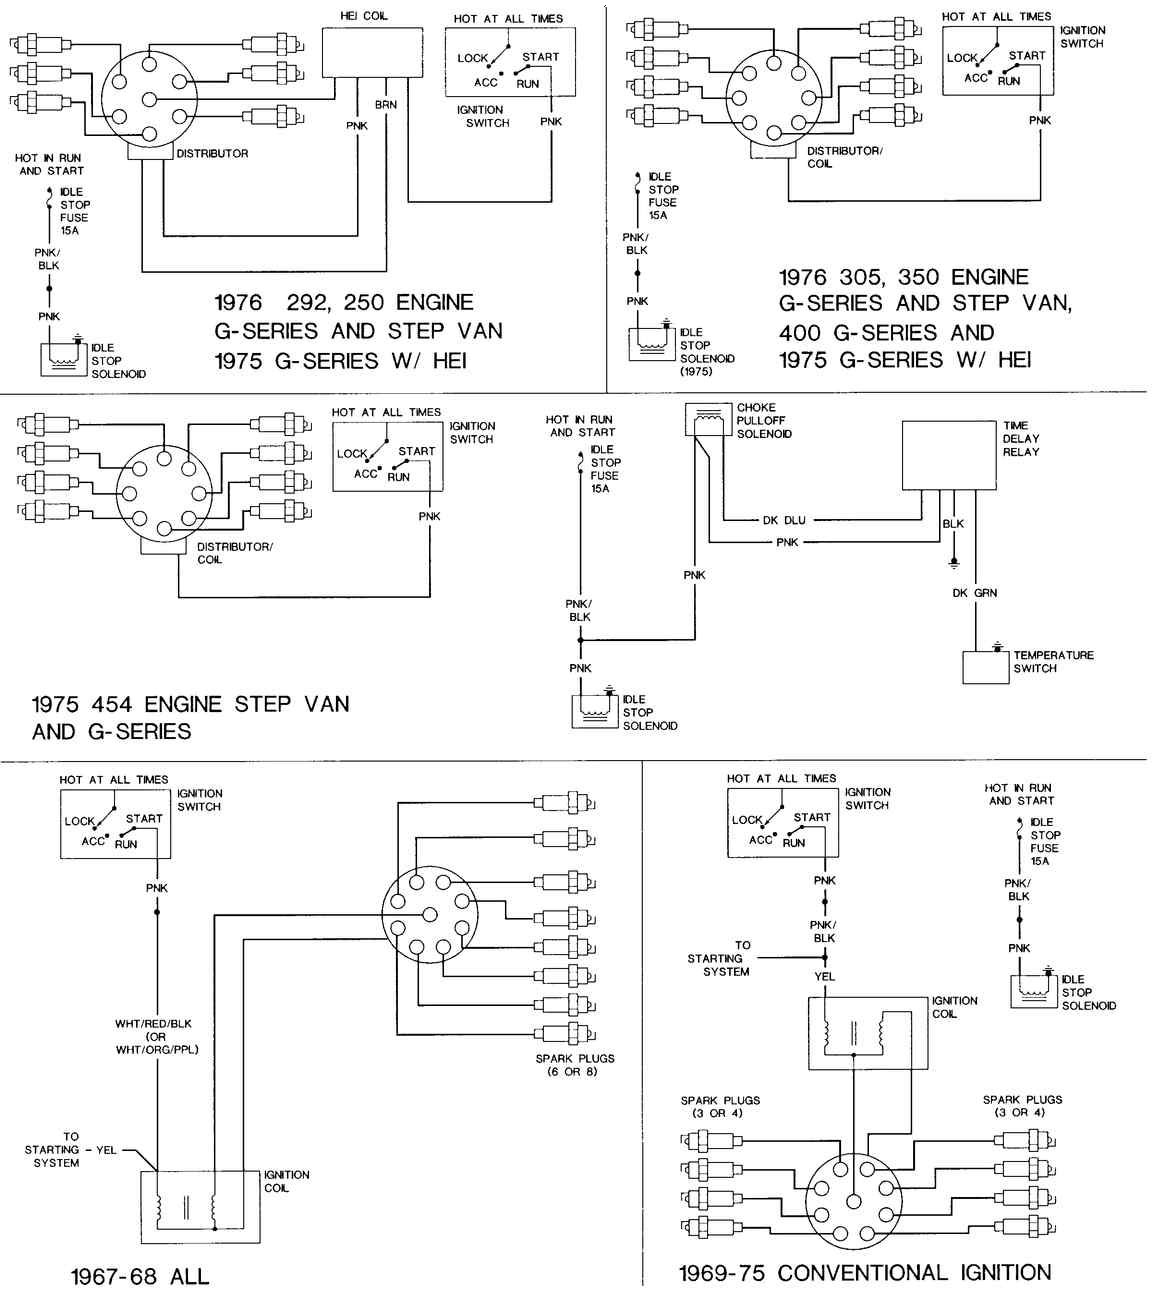 1018d1252846358 67 g10 wiring diagrams parts 89776w01l workhorse wiring diagram efcaviation com Workhorse Wiring Diagram Manual at crackthecode.co